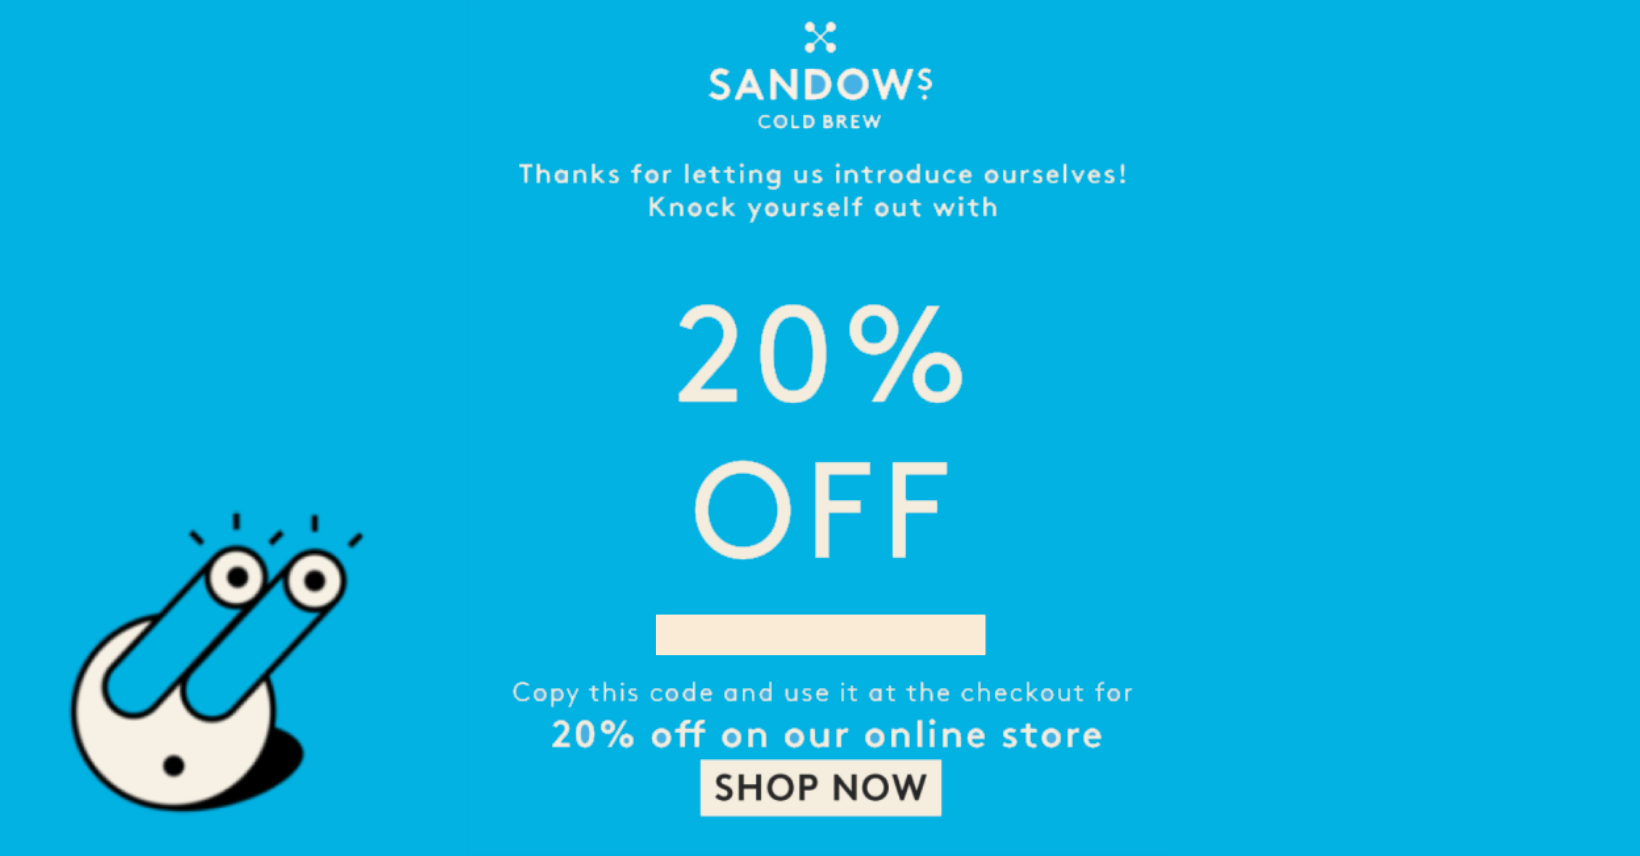 Get a taste of Sandows with 20% off — find the code at the end!